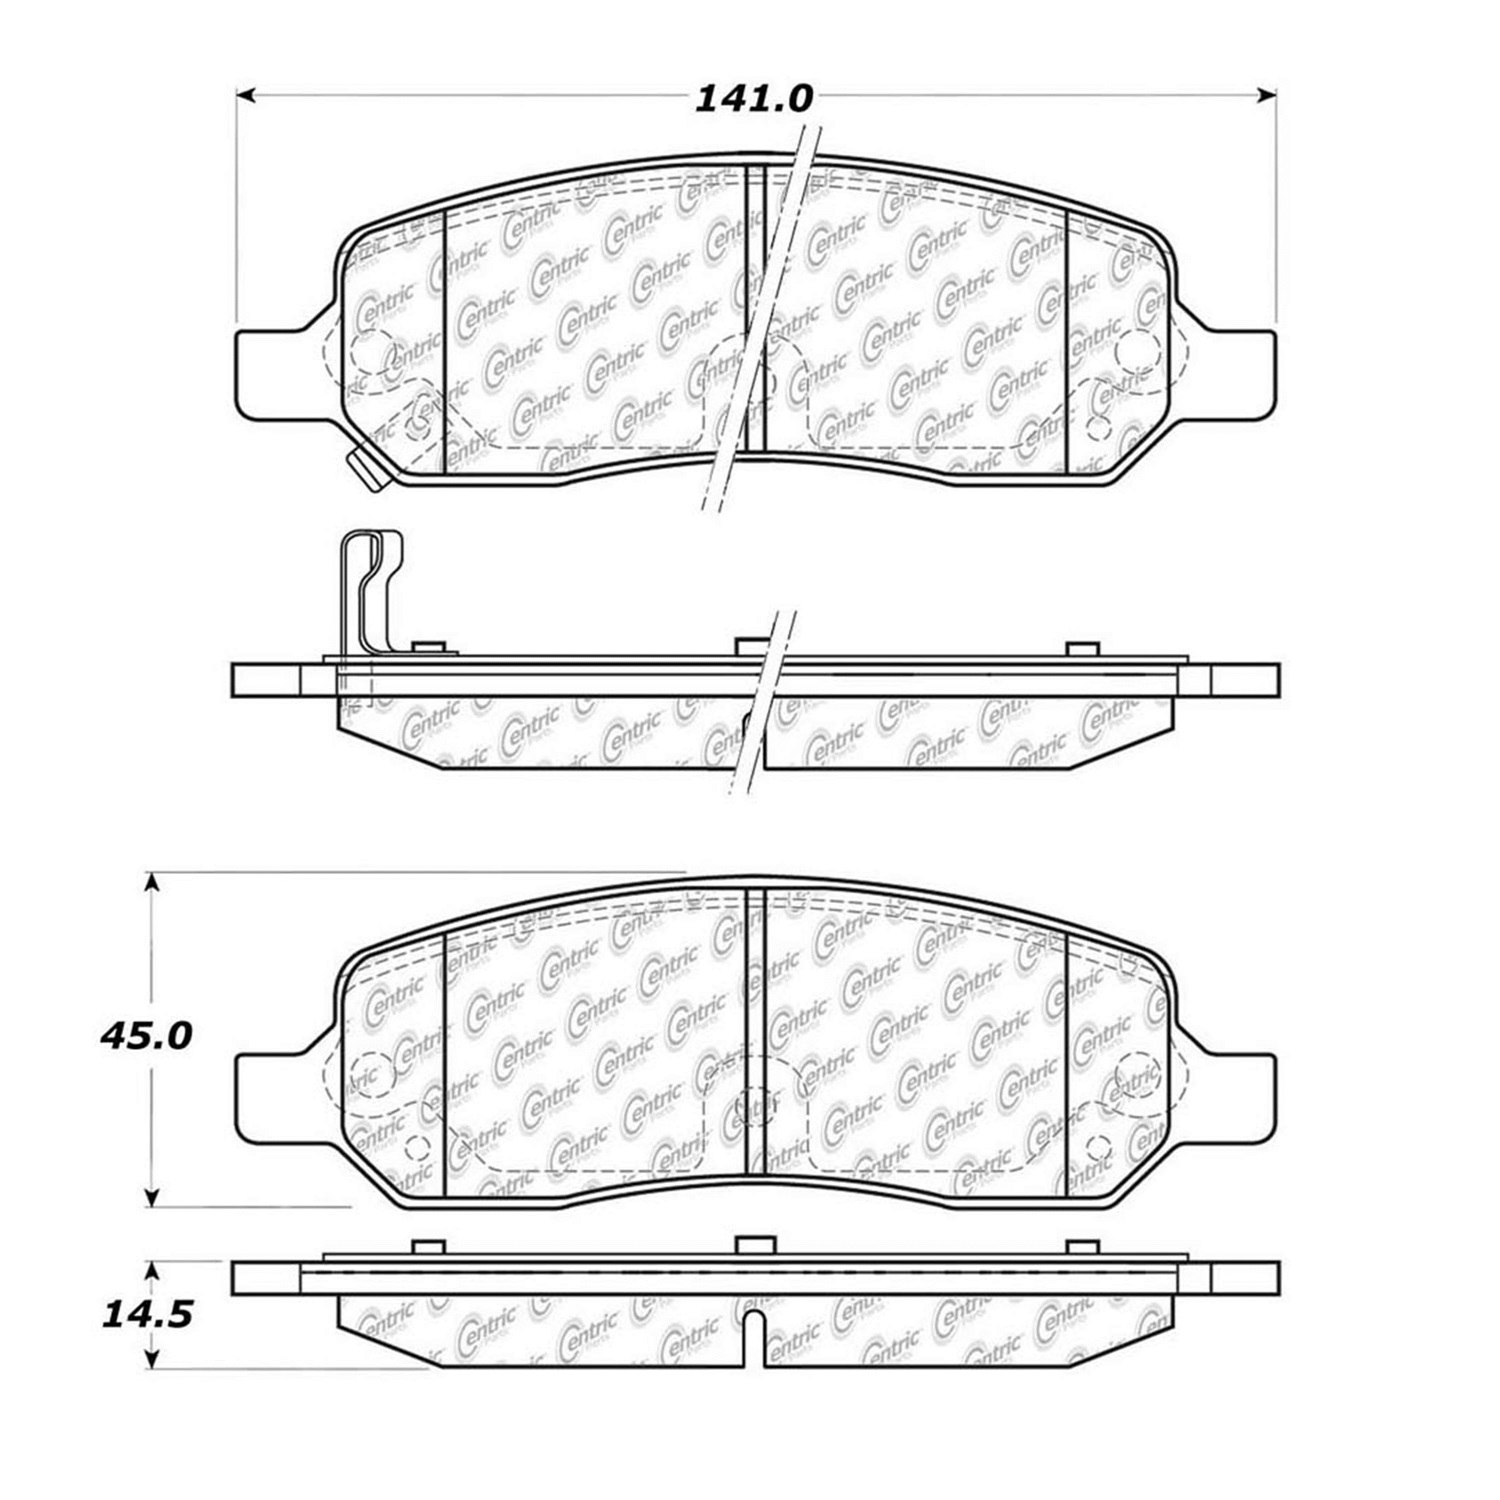 StopTech 104.11720 Disc Brake Pad Fits 06-11 DTS Lucerne